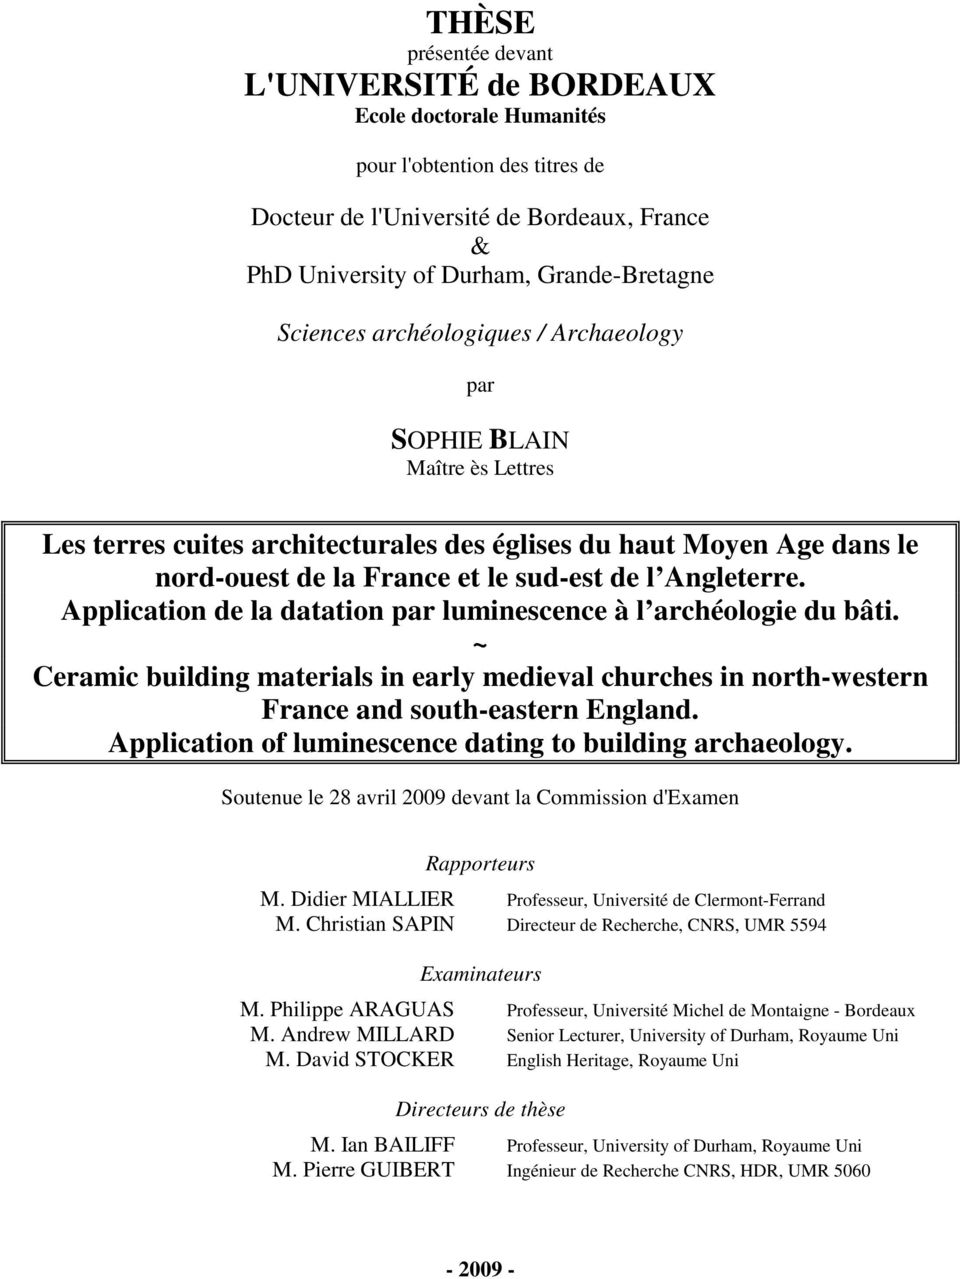 Application de la datation par luminescence à l archéologie du bâti. ~ Ceramic building materials in early medieval churches in north-western France and south-eastern England.